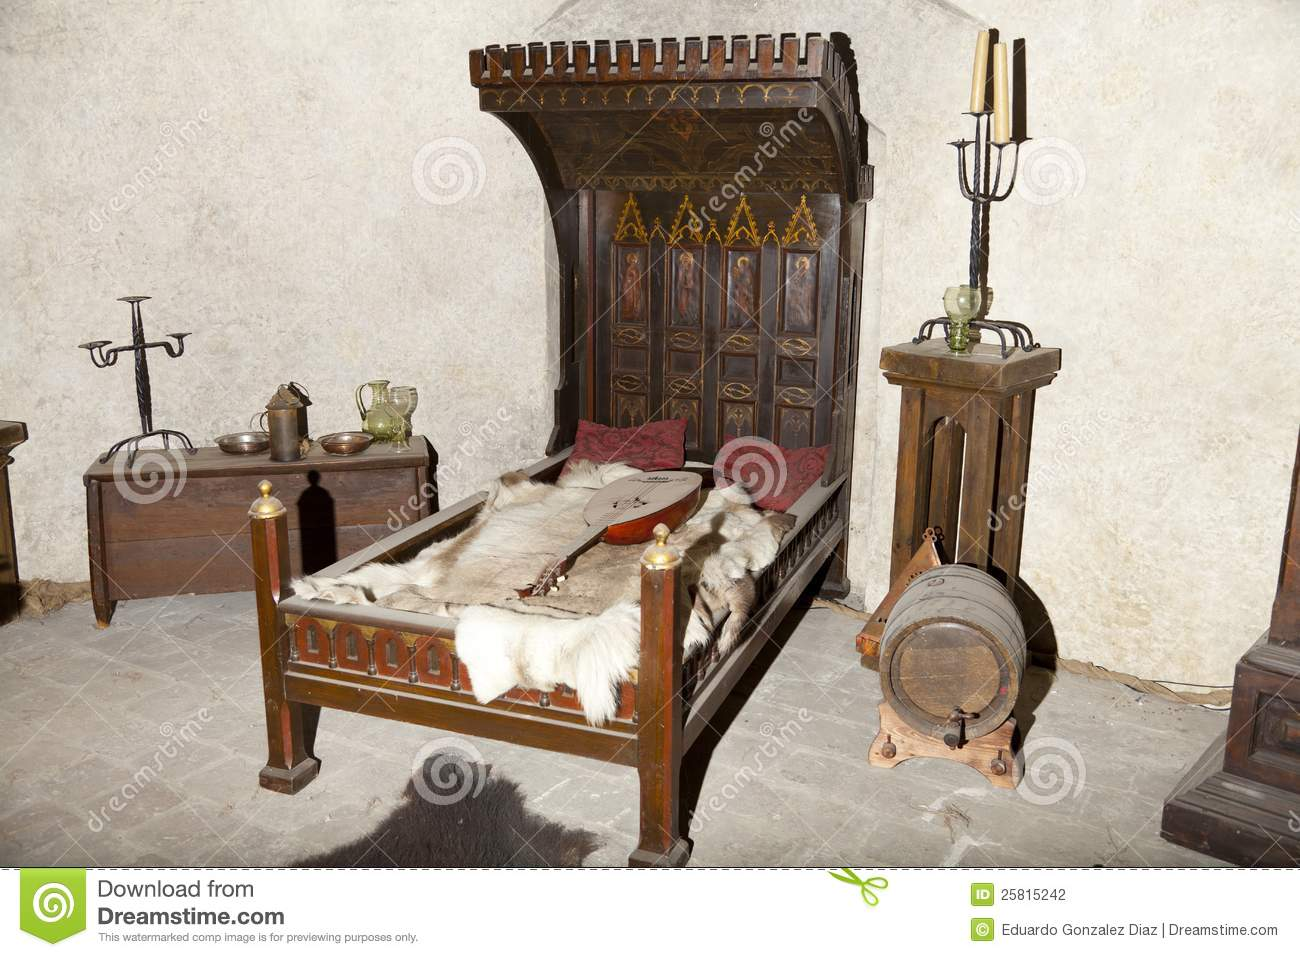 medieval bed stock photography image 25815242